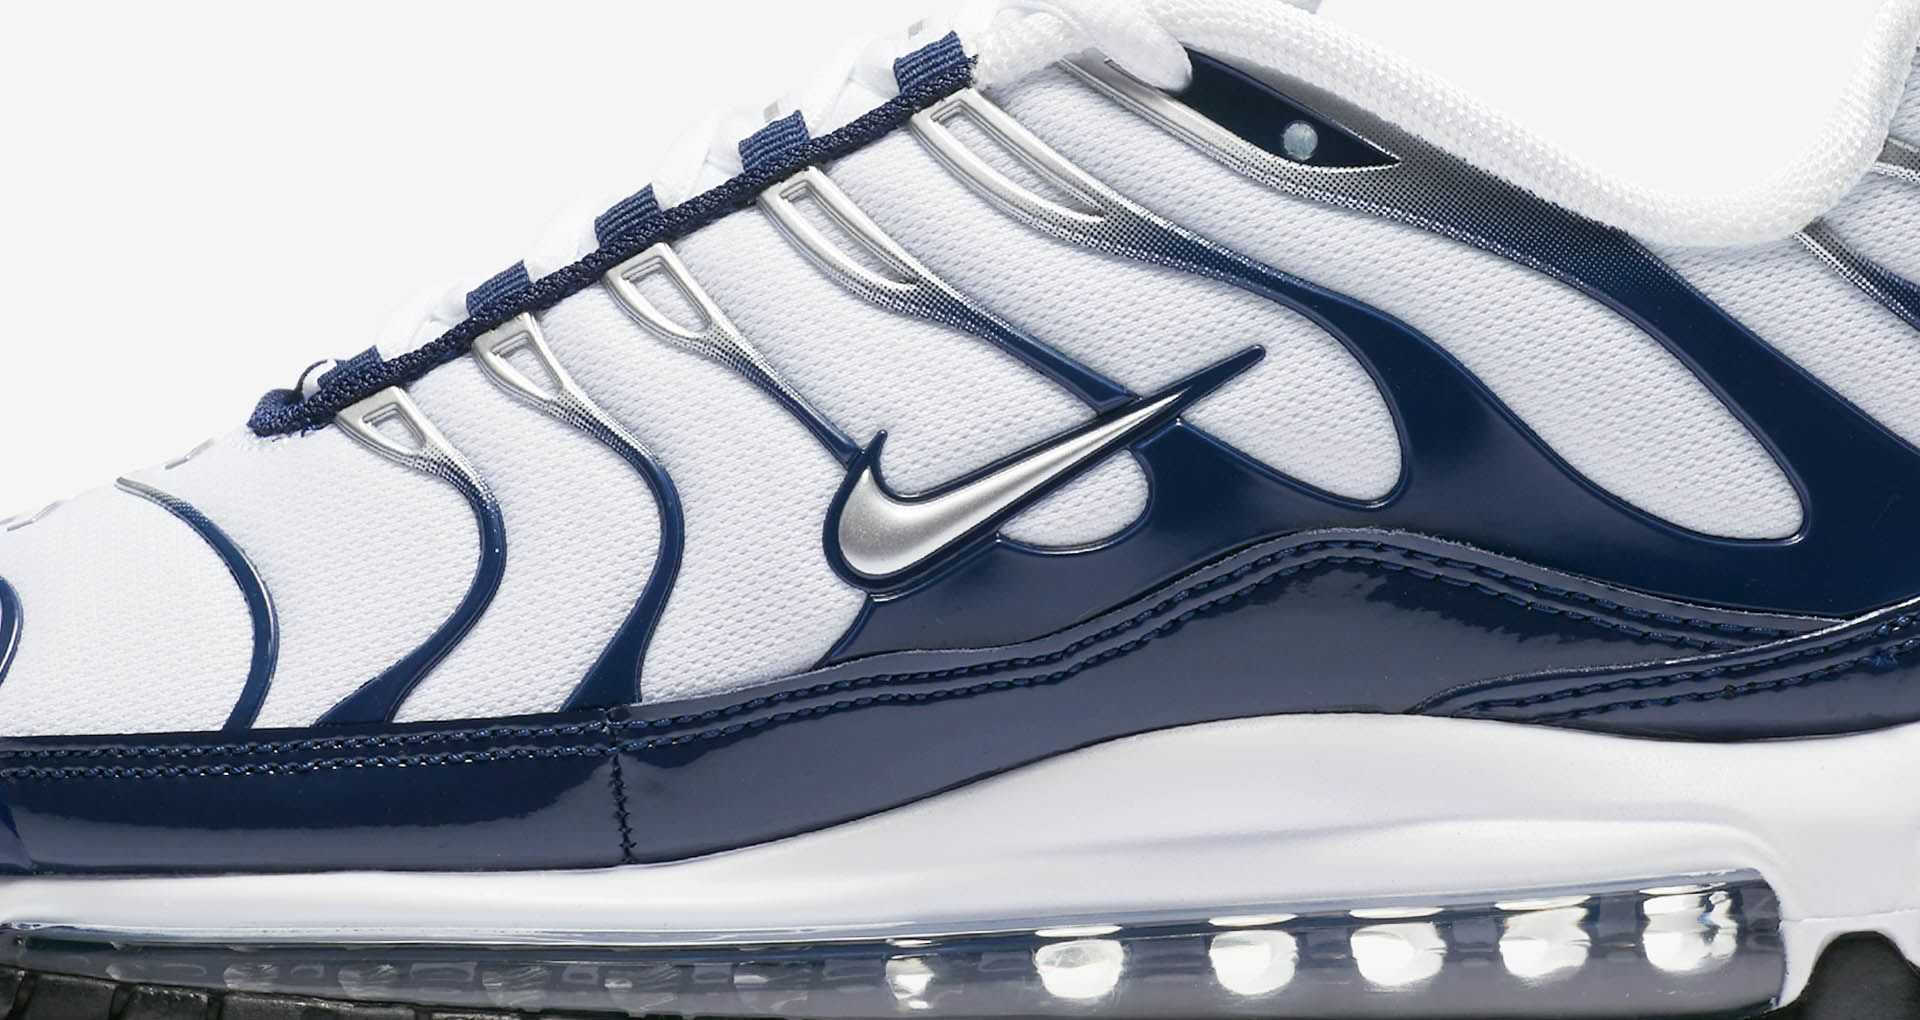 buy popular 30e4b 062f8 Nike Air Max 97 / Plus 'Metallic Silver & Midnight Navy' Release Date